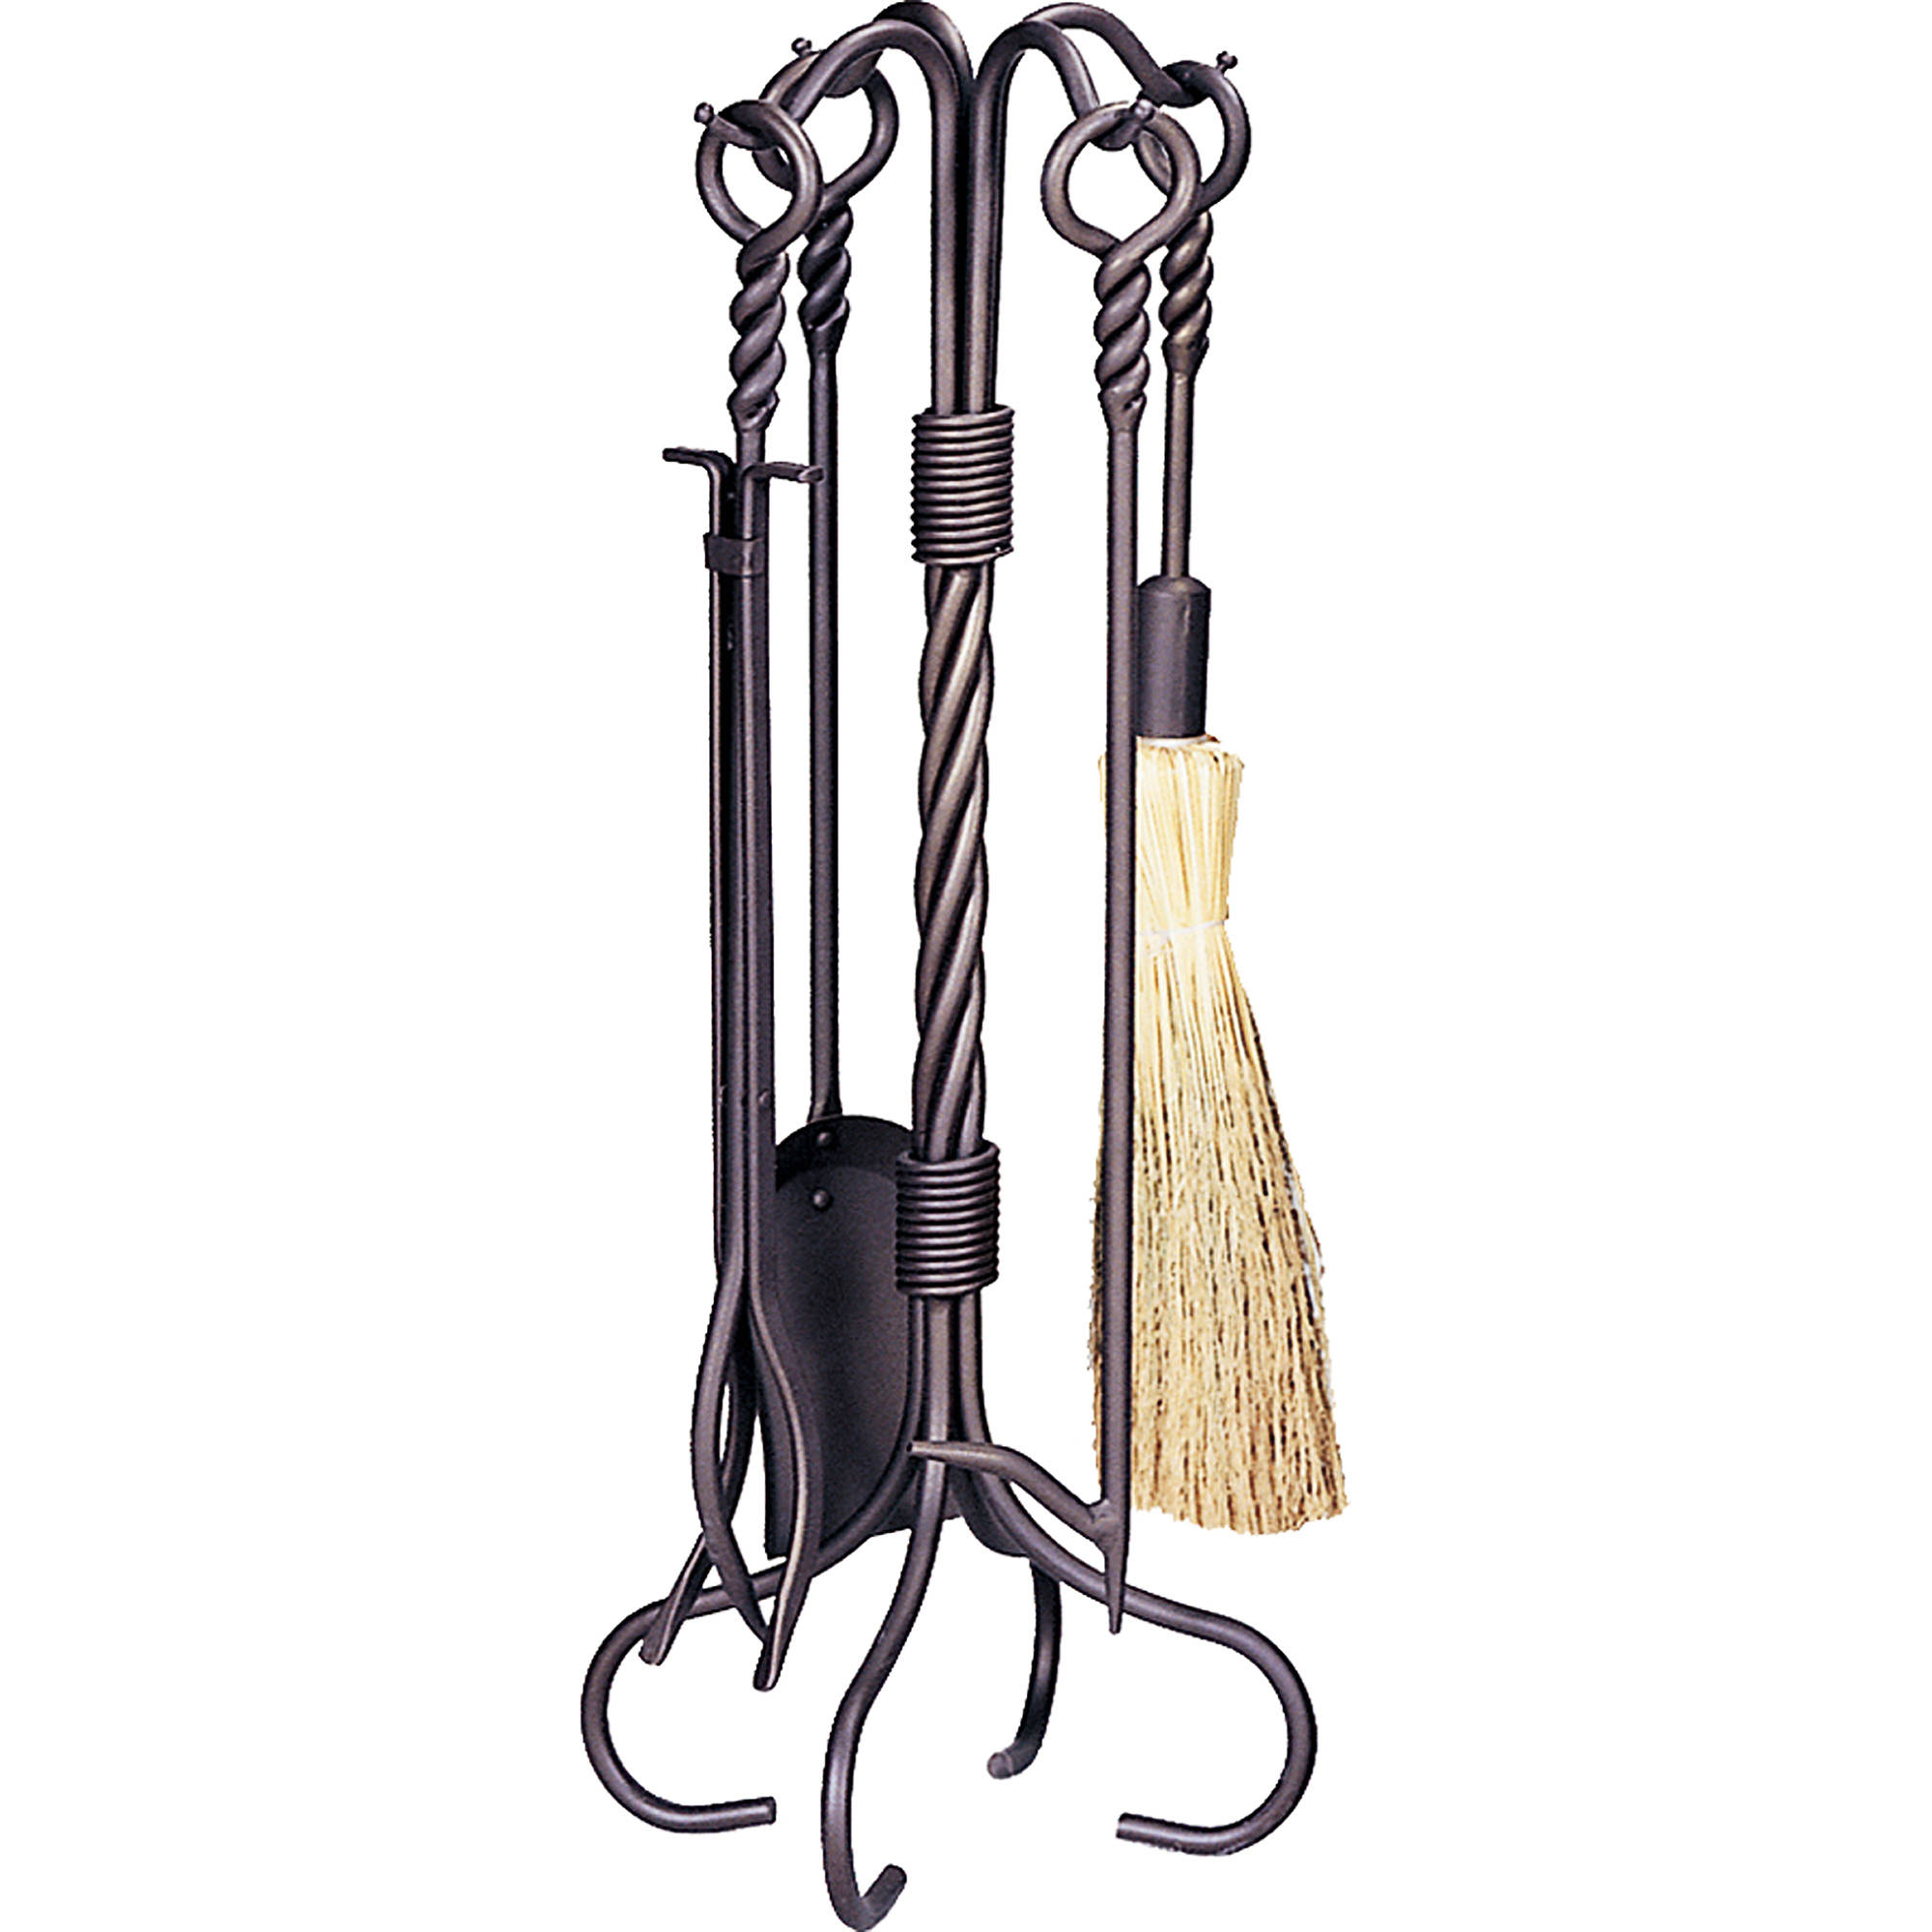 Uniflame Bronze Finish Fireplace Tool Set, 5-Piece by UniFlame